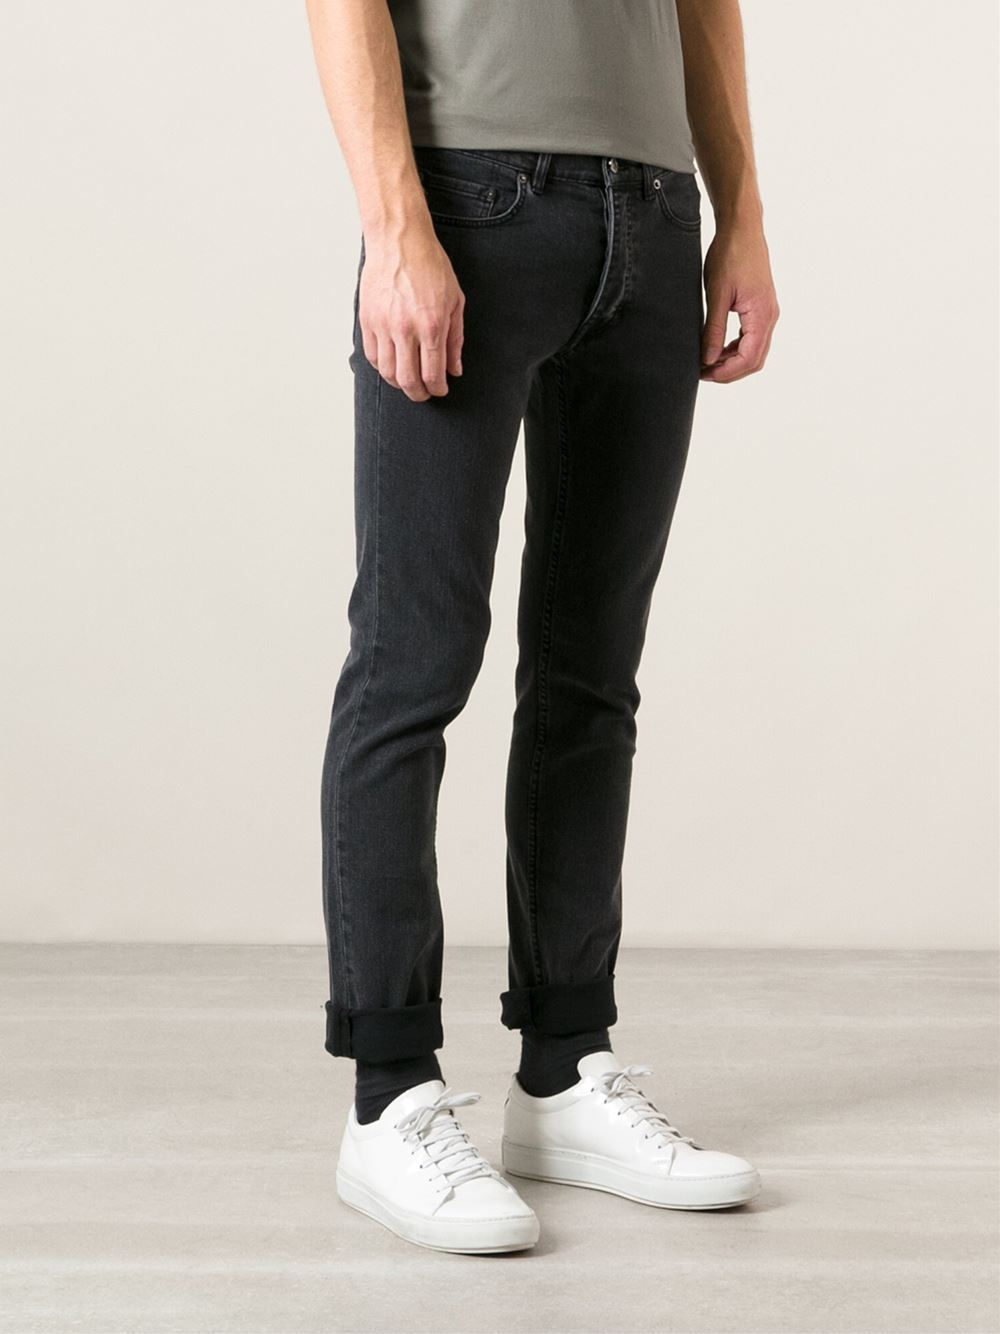 Shop the Latest Collection of Black Jeans for Men Online at humorrmundiall.ga FREE SHIPPING AVAILABLE! Macy's Presents: The Edit- A curated mix of fashion and inspiration Check It Out. Free Shipping with $75 purchase + Free Store Pickup. Contiguous US. Alfani Logan Straight-Leg Jeans.